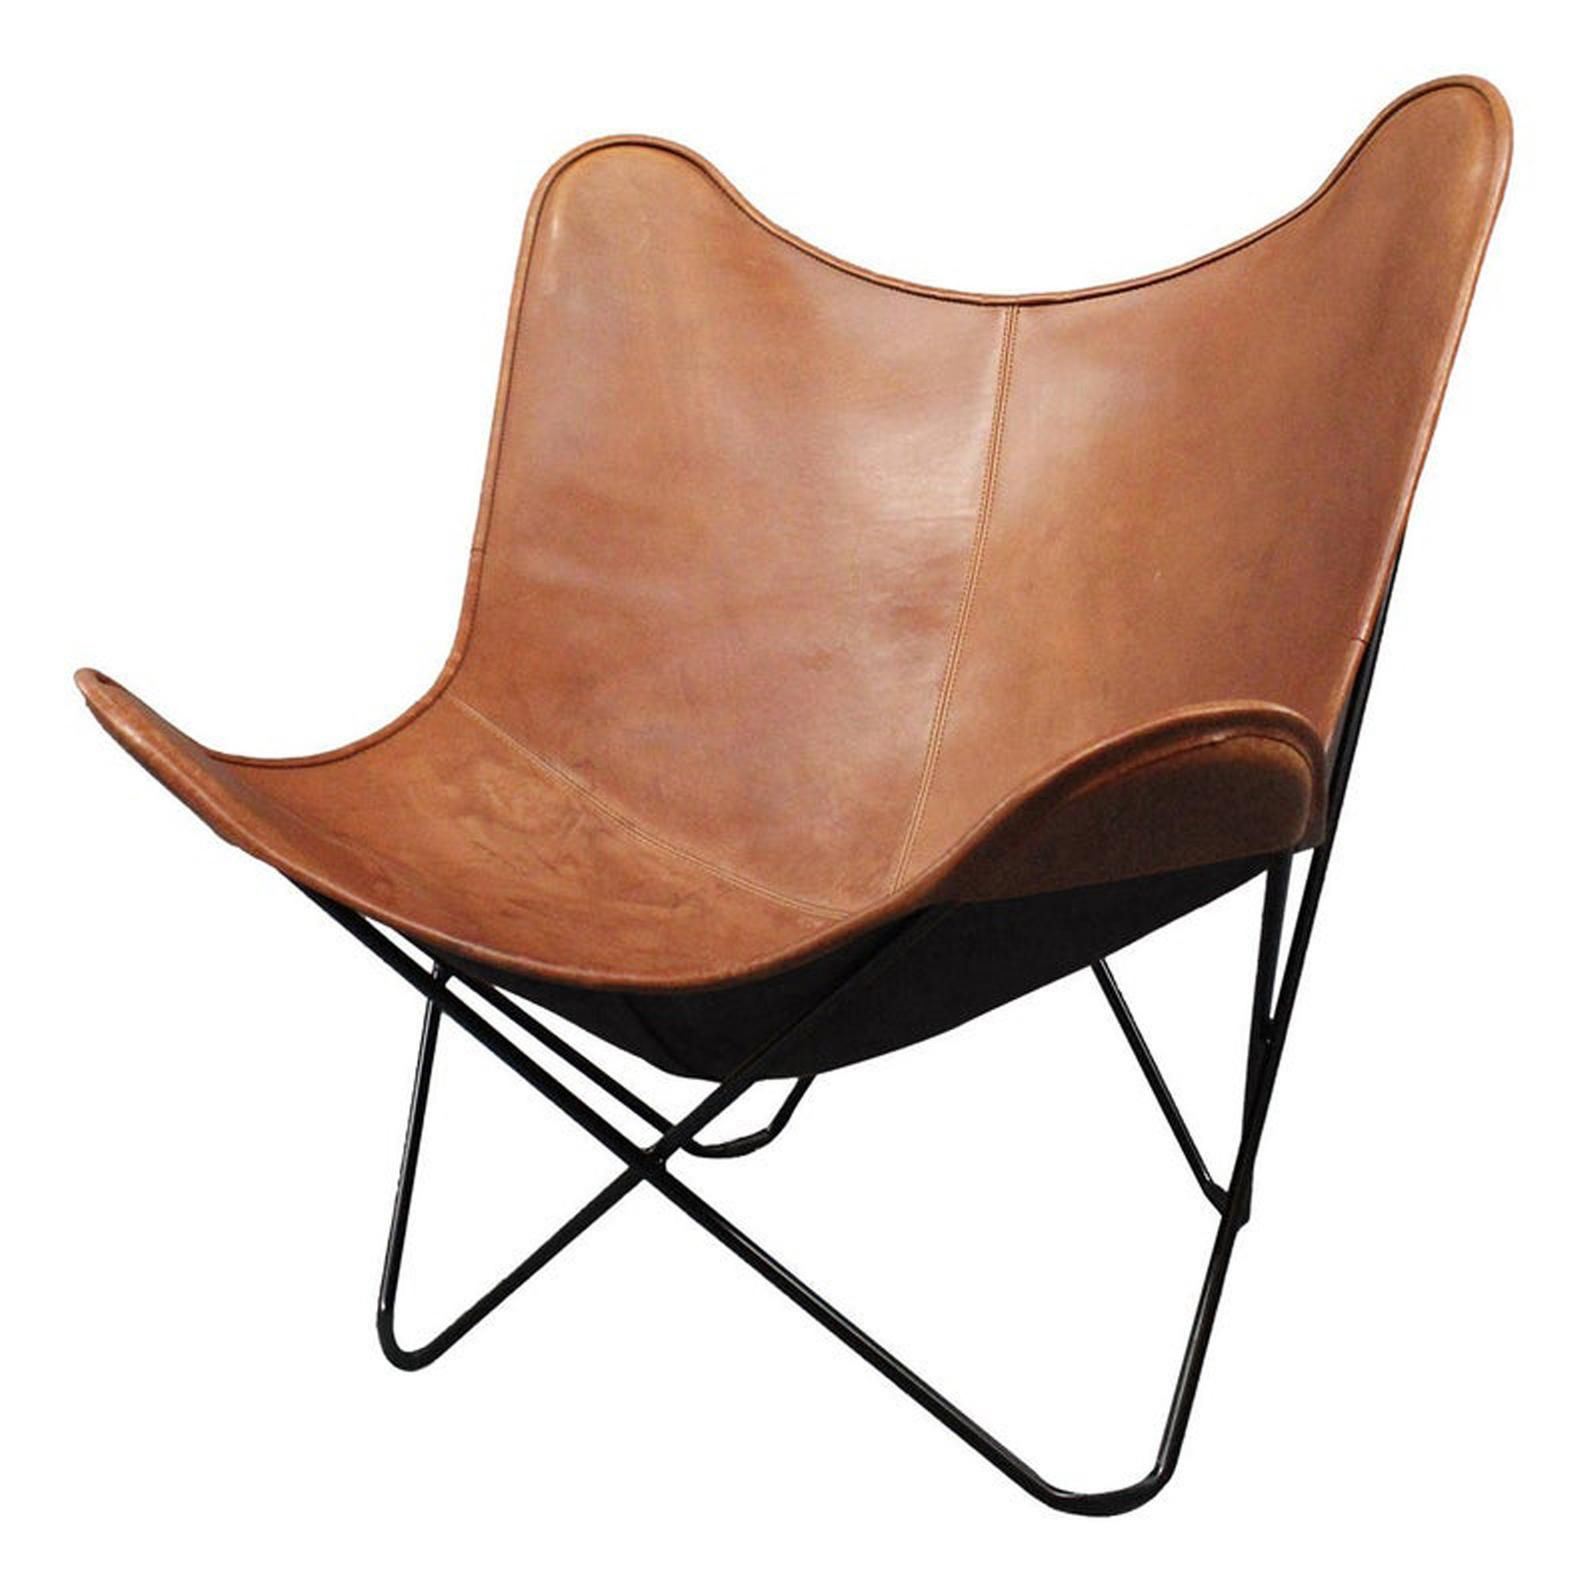 Elegante Echtes Leder Wohnzimmer Schmetterling Stuhl Home Etsy In 2020 Leather Butterfly Chair Butterfly Chair Living Room Leather